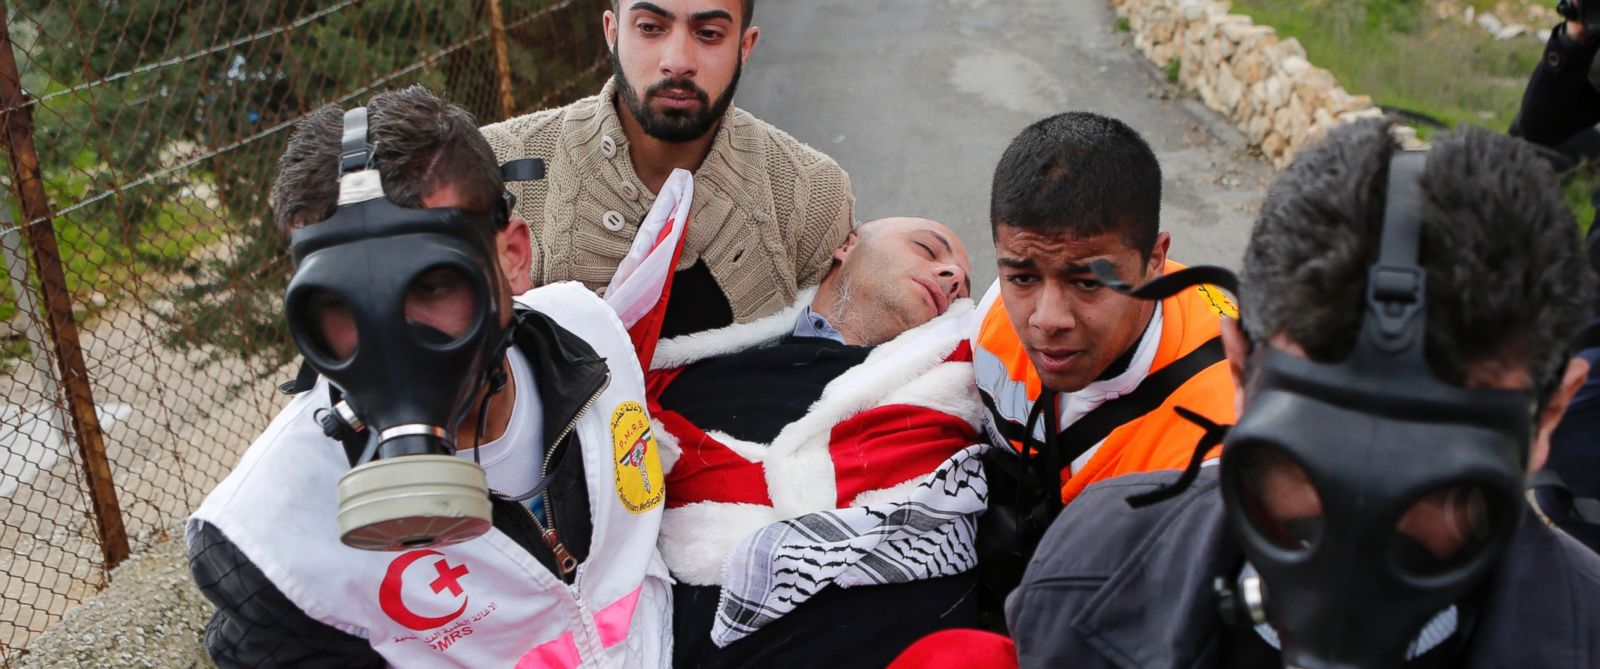 PHOTO: A Palestinian protester dressed in a Santa Claus costume is carried by medics after inhaling tear gas fired by Israeli troops during a demonstration near a Bethlehem checkpoint.